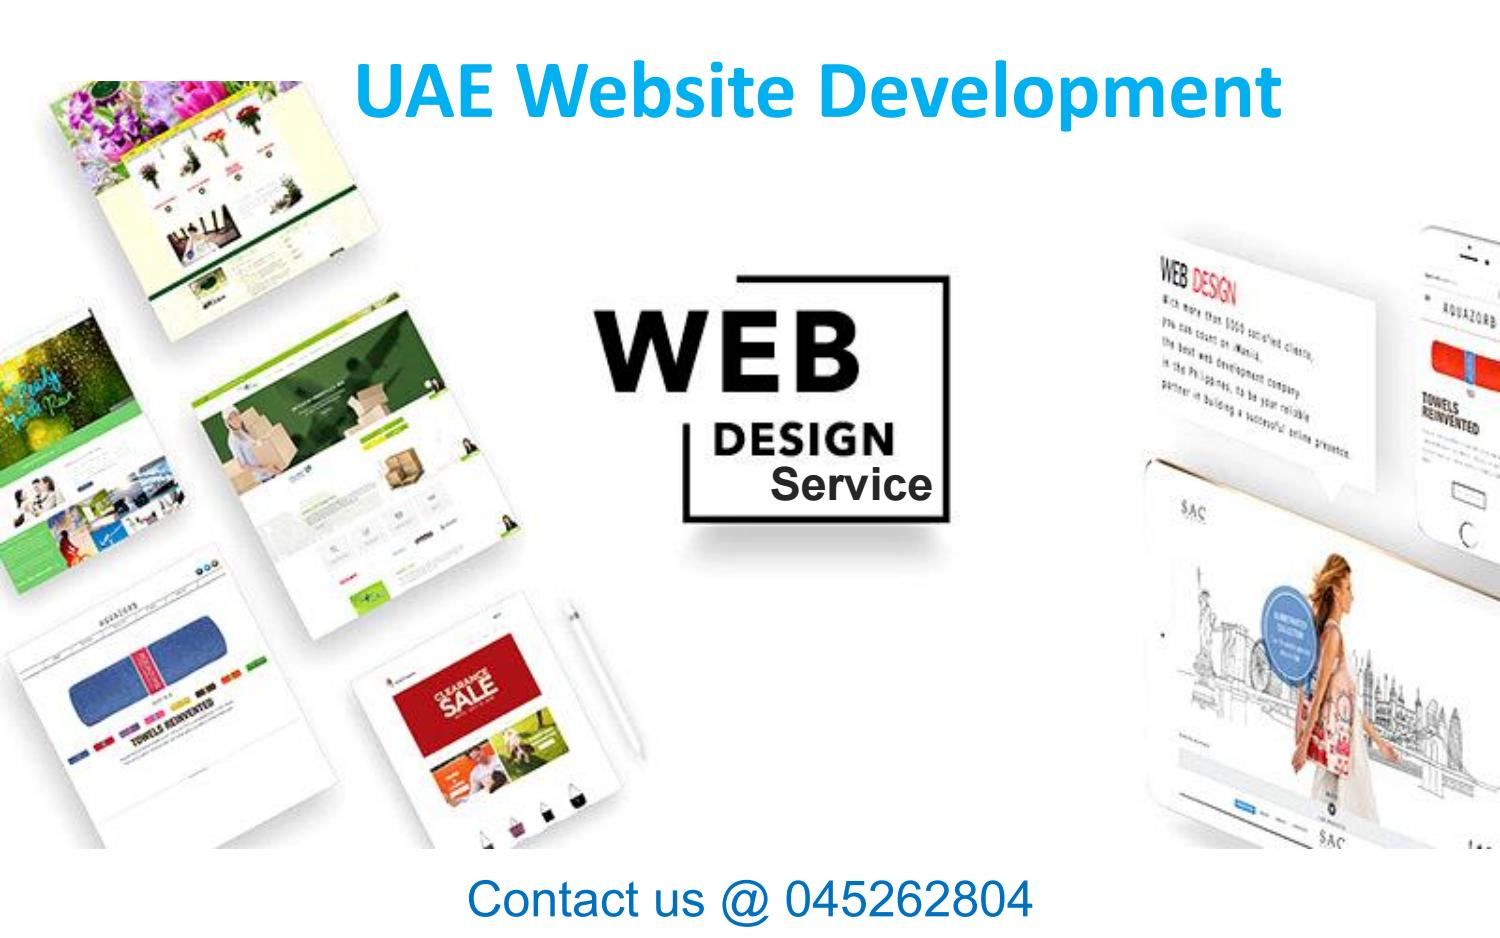 Professional Web Designing Agency In Dubai Contact 045262804 By Hussain9909 Issuu